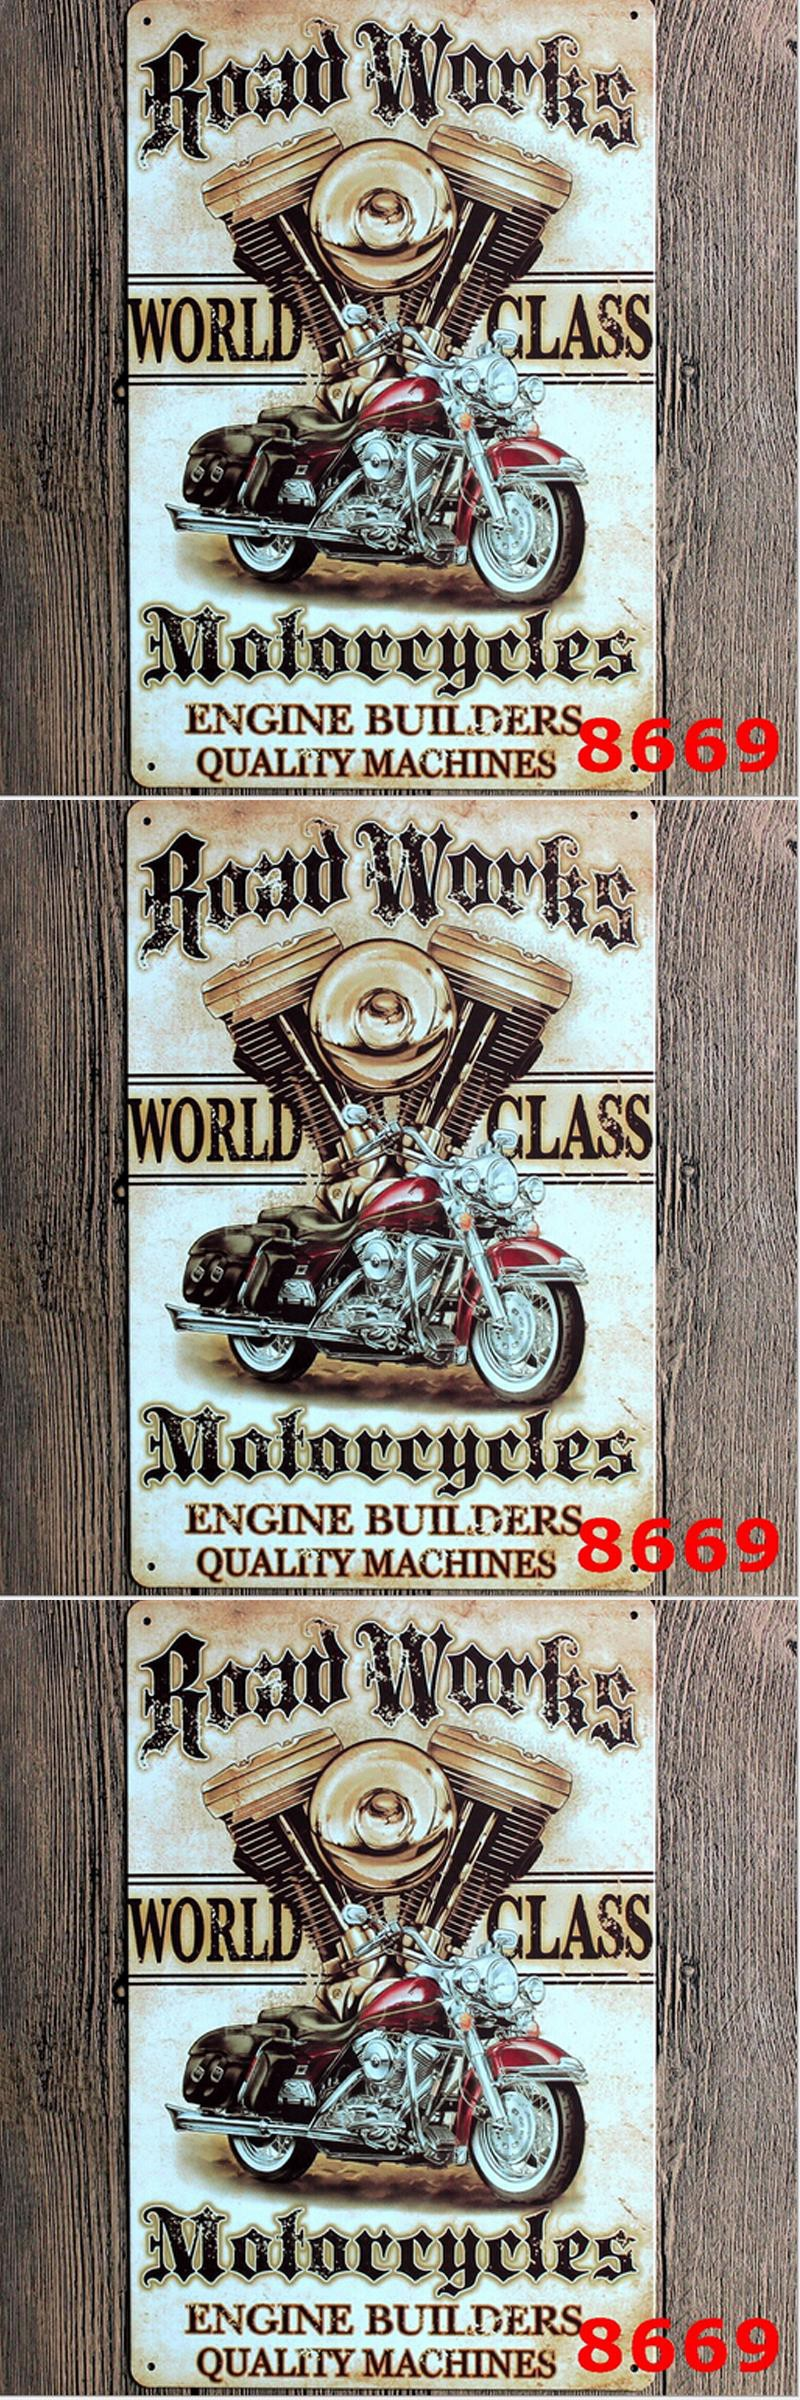 Road works motorcycle metal painting wall stickers restaurant bar